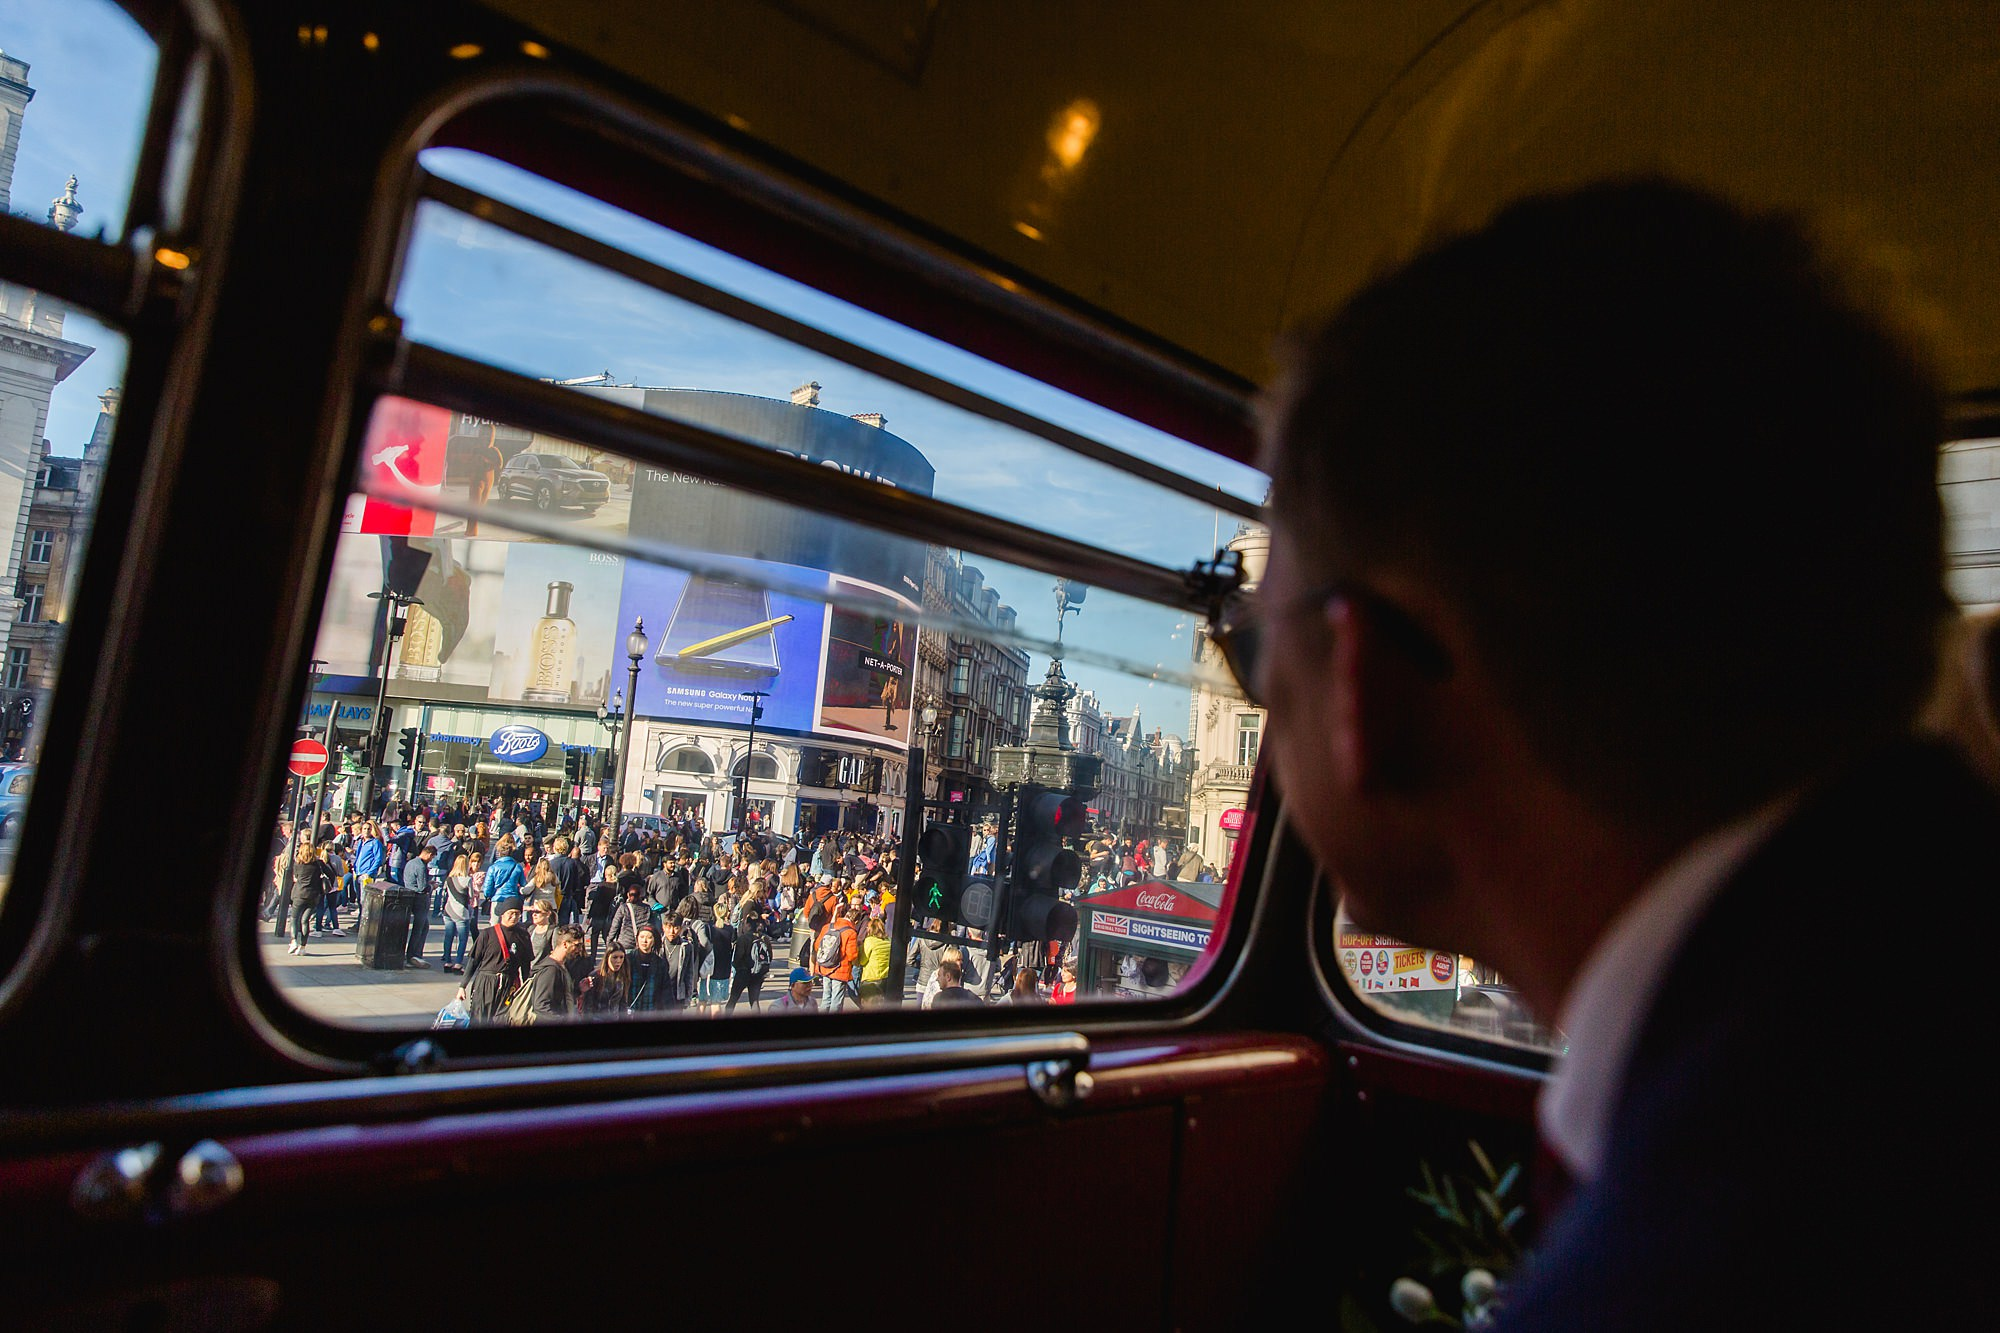 guest looks out at view of London from bus